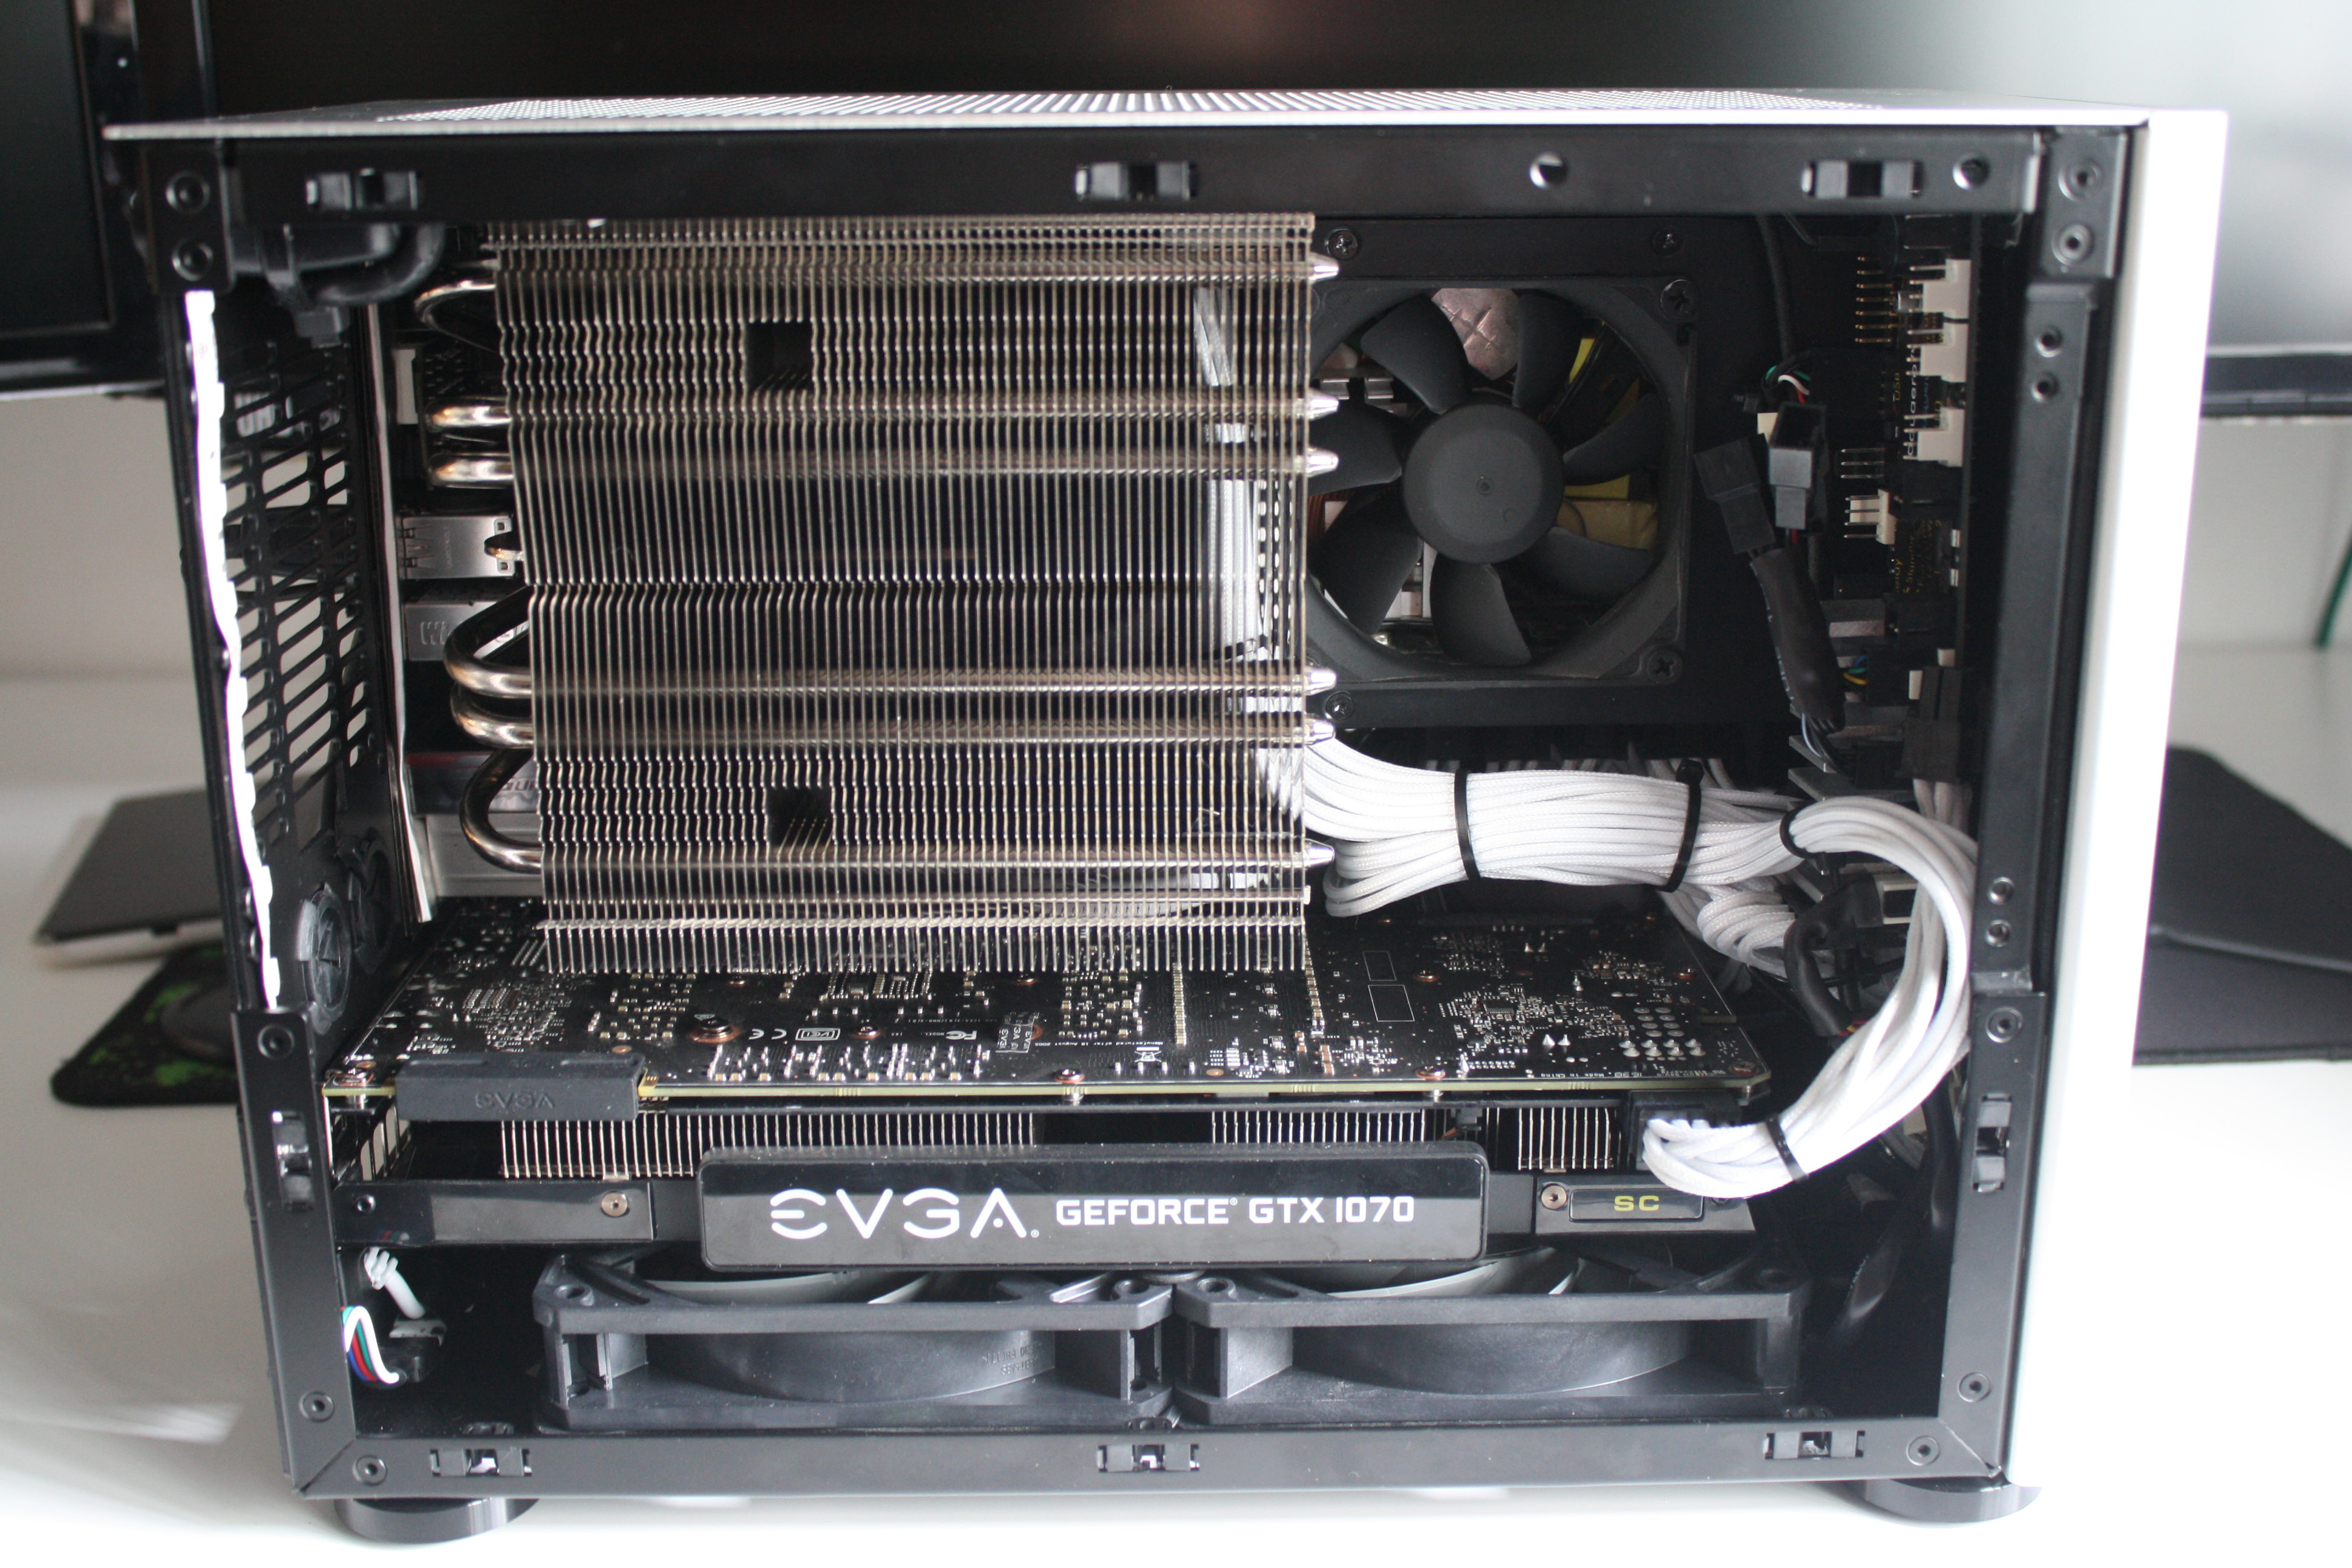 NCASE M1 prototype, a Mini-ITX Case - Page 129 - Overclock